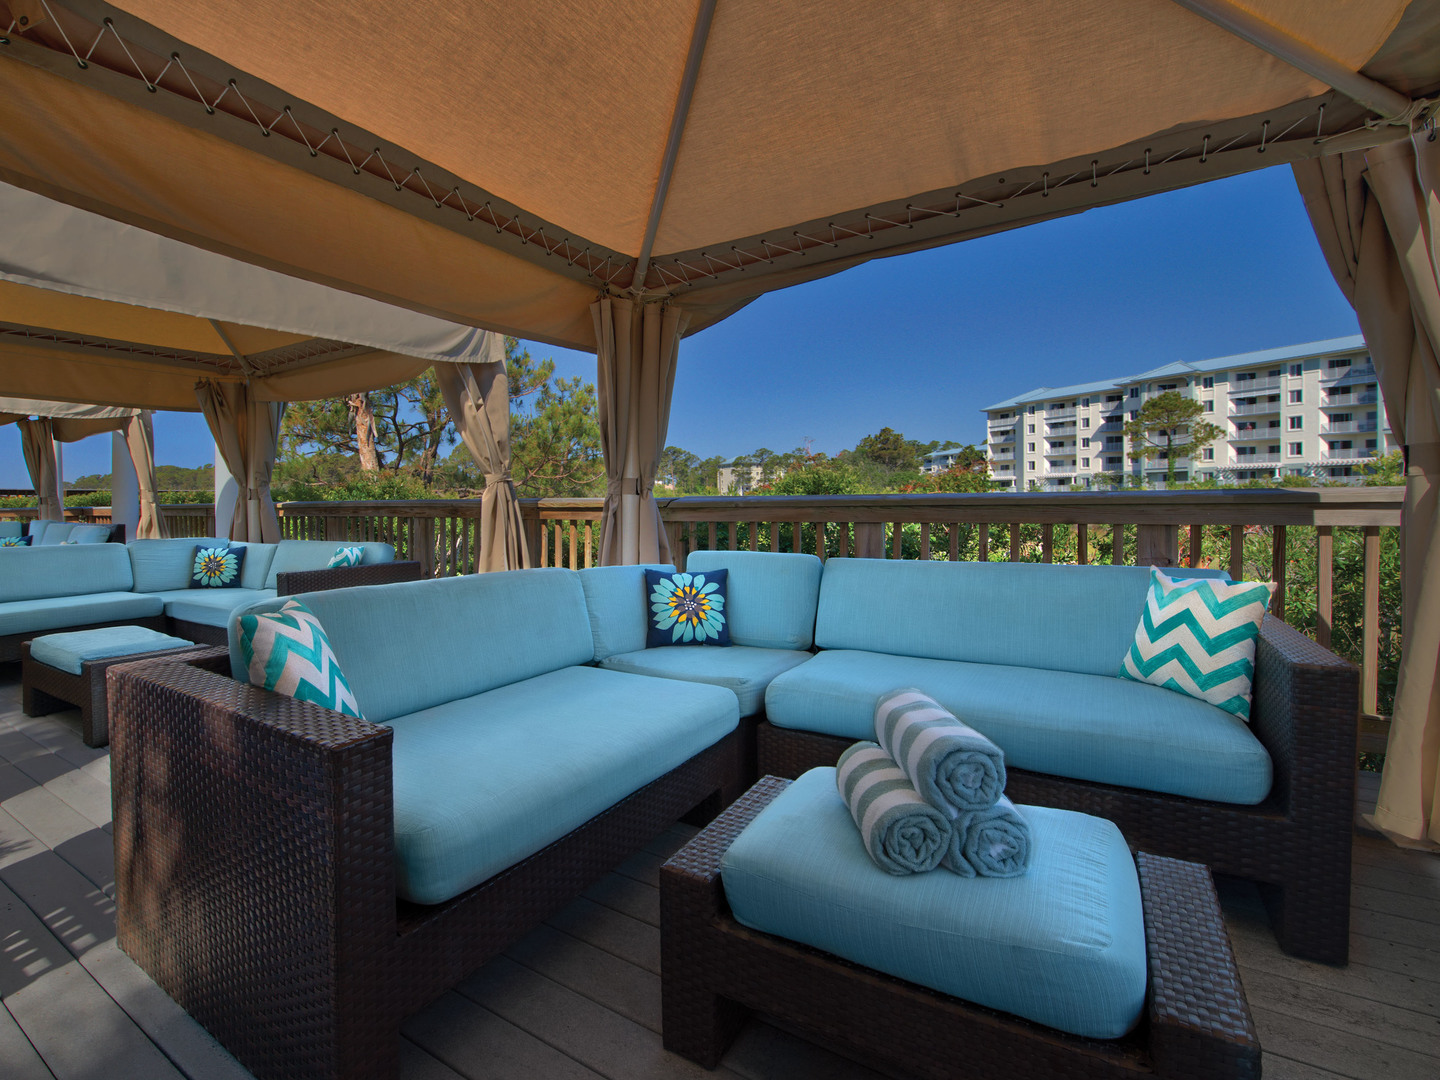 Marriott's SurfWatch<span class='trademark'>®</span> Poolside Cabanas. Marriott's SurfWatch<span class='trademark'>®</span> is located in Hilton Head Island, South Carolina United States.